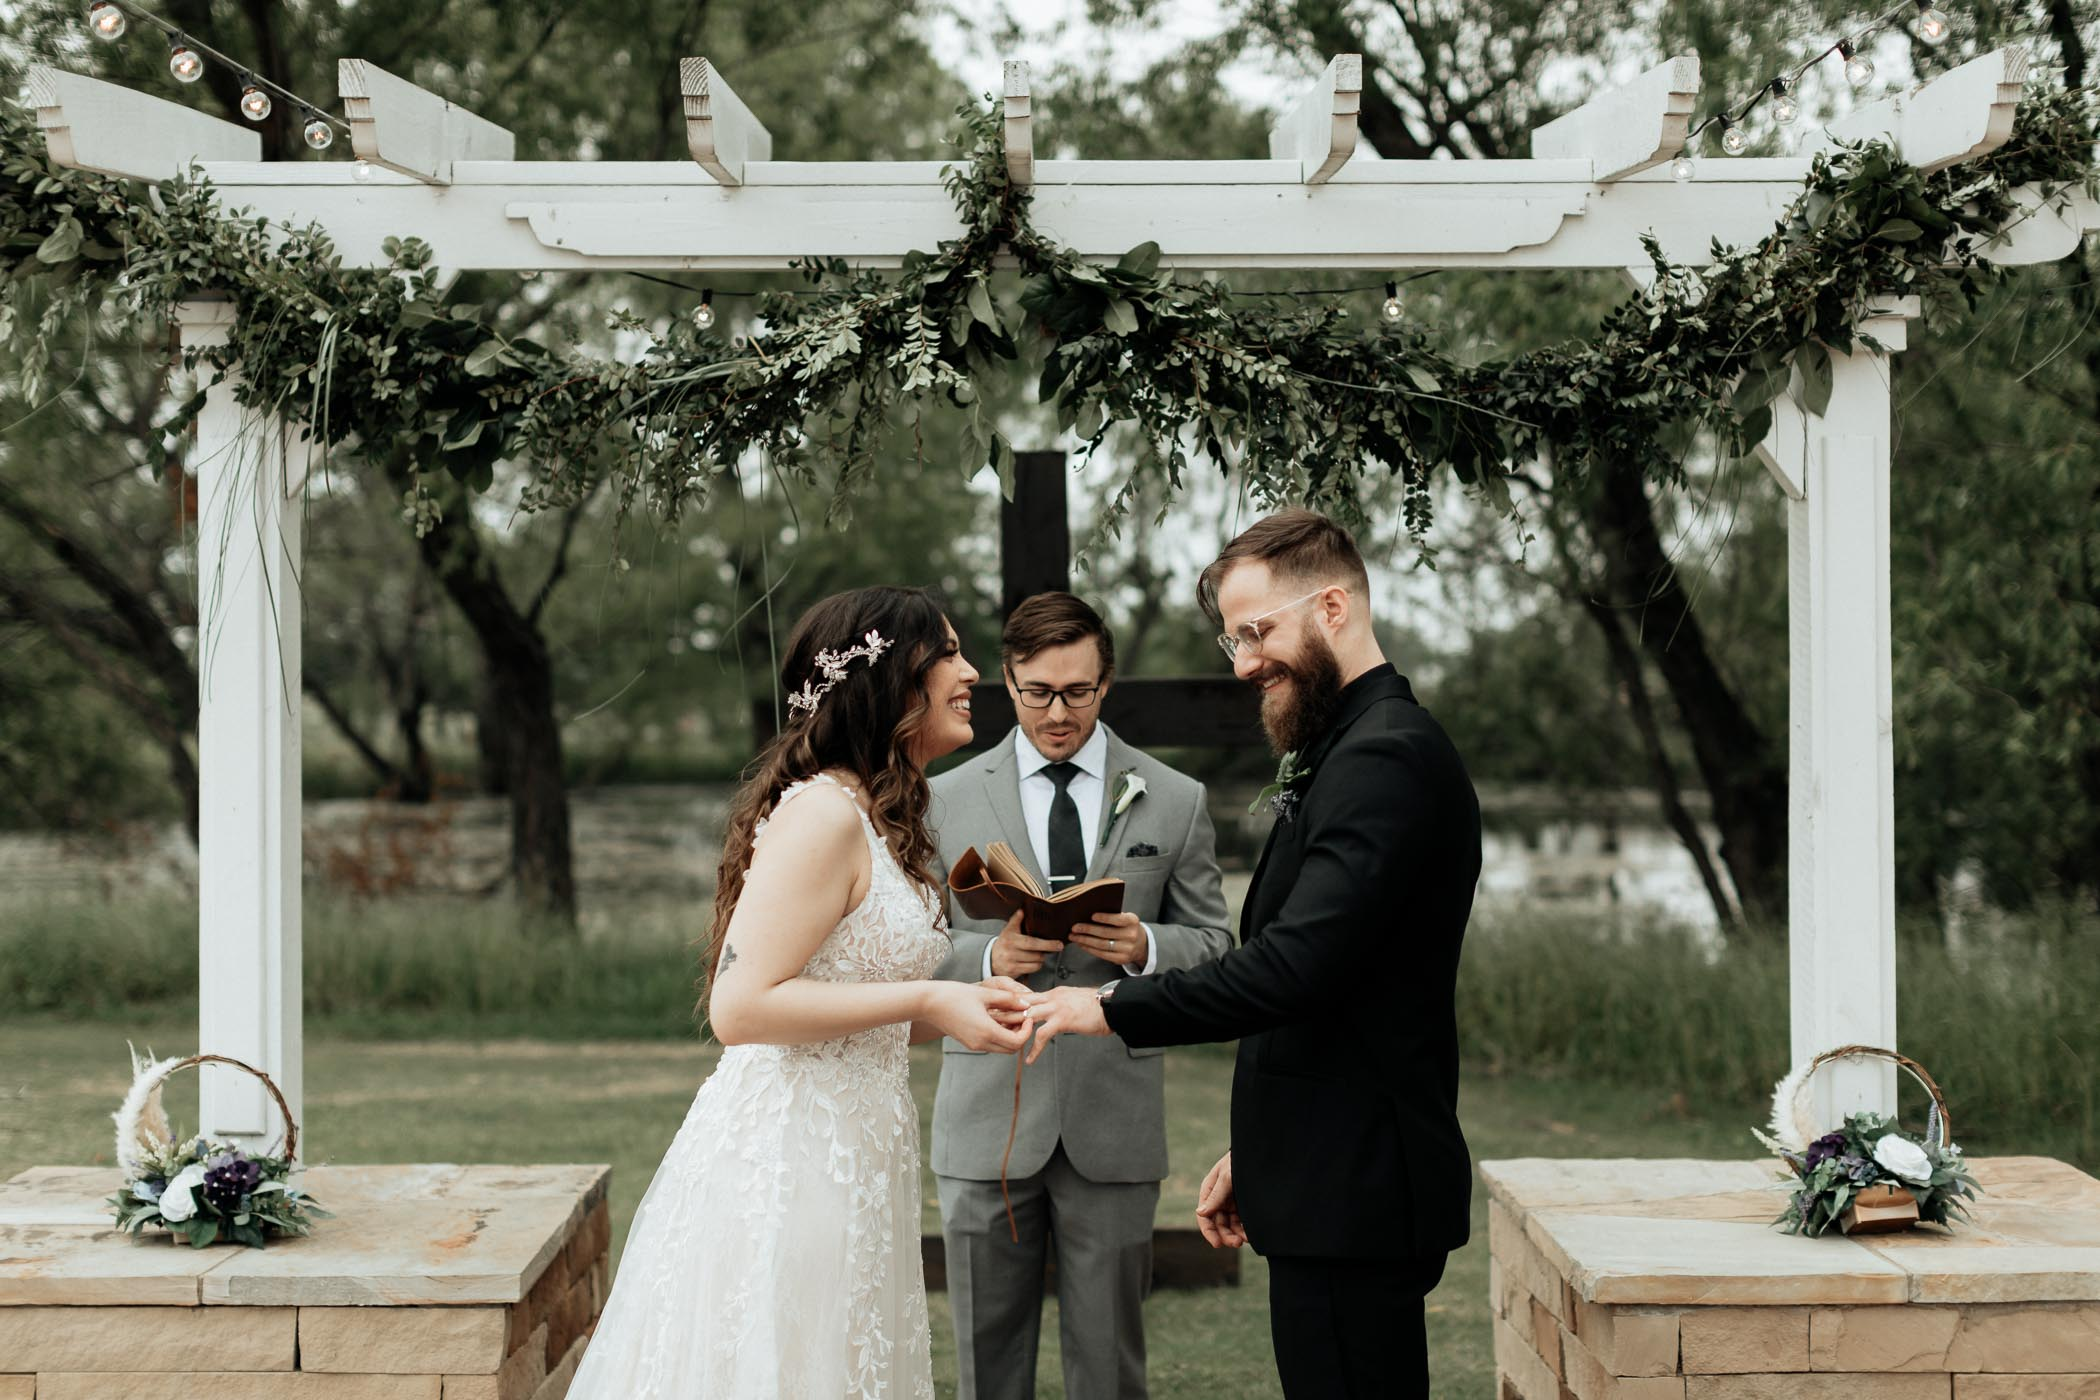 Bride and groom exchanging wedding rings in DFW